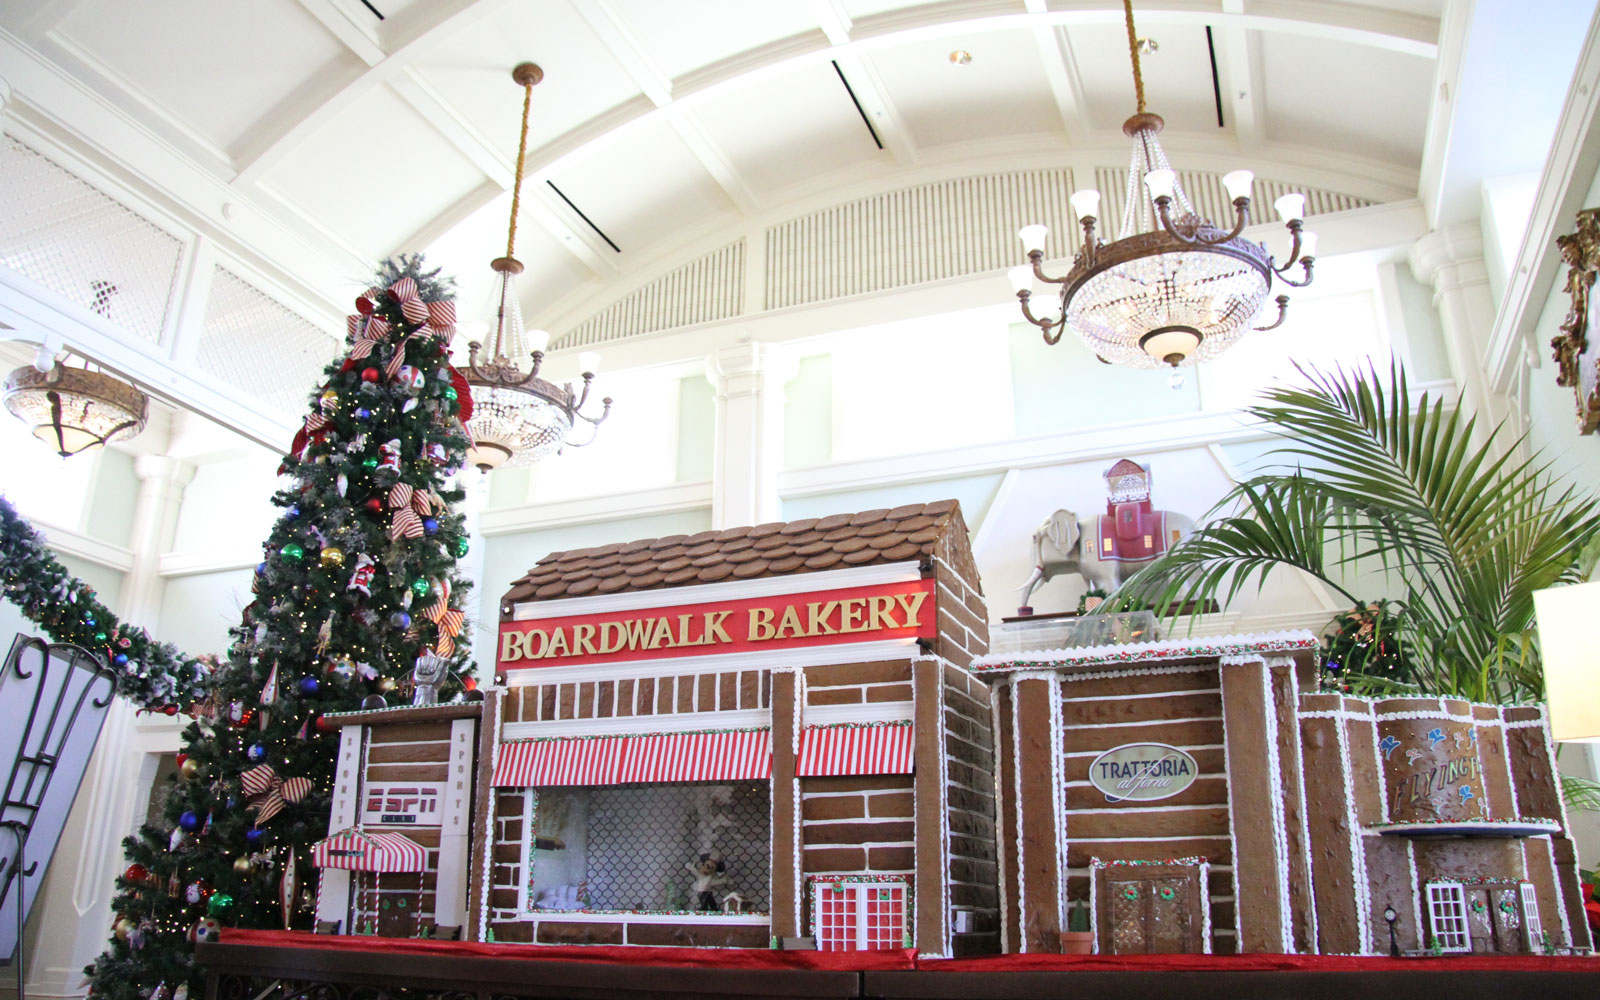 Boardwalk bakery decorations